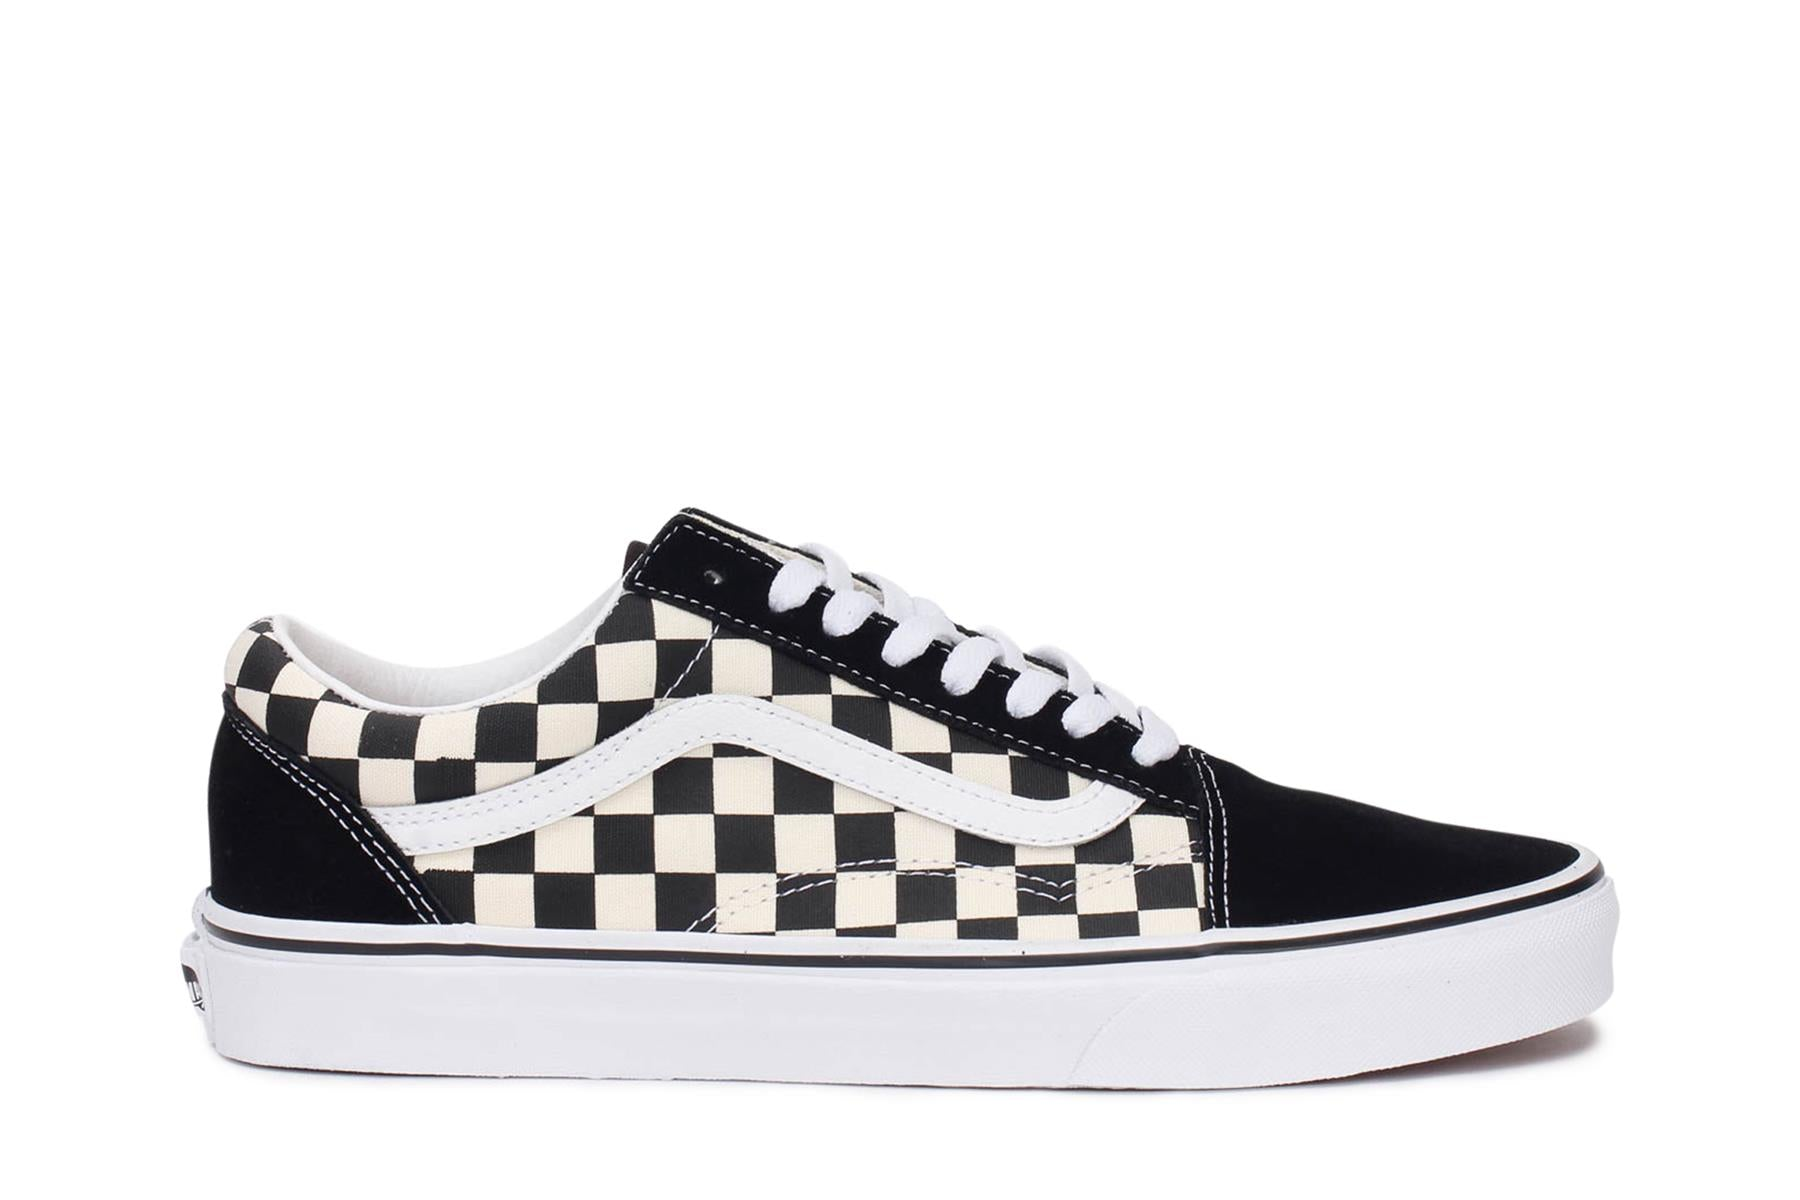 vans-mens-sneakers-old-skool-primary-checkerboard-black-white-vn0a38g1p0s-main